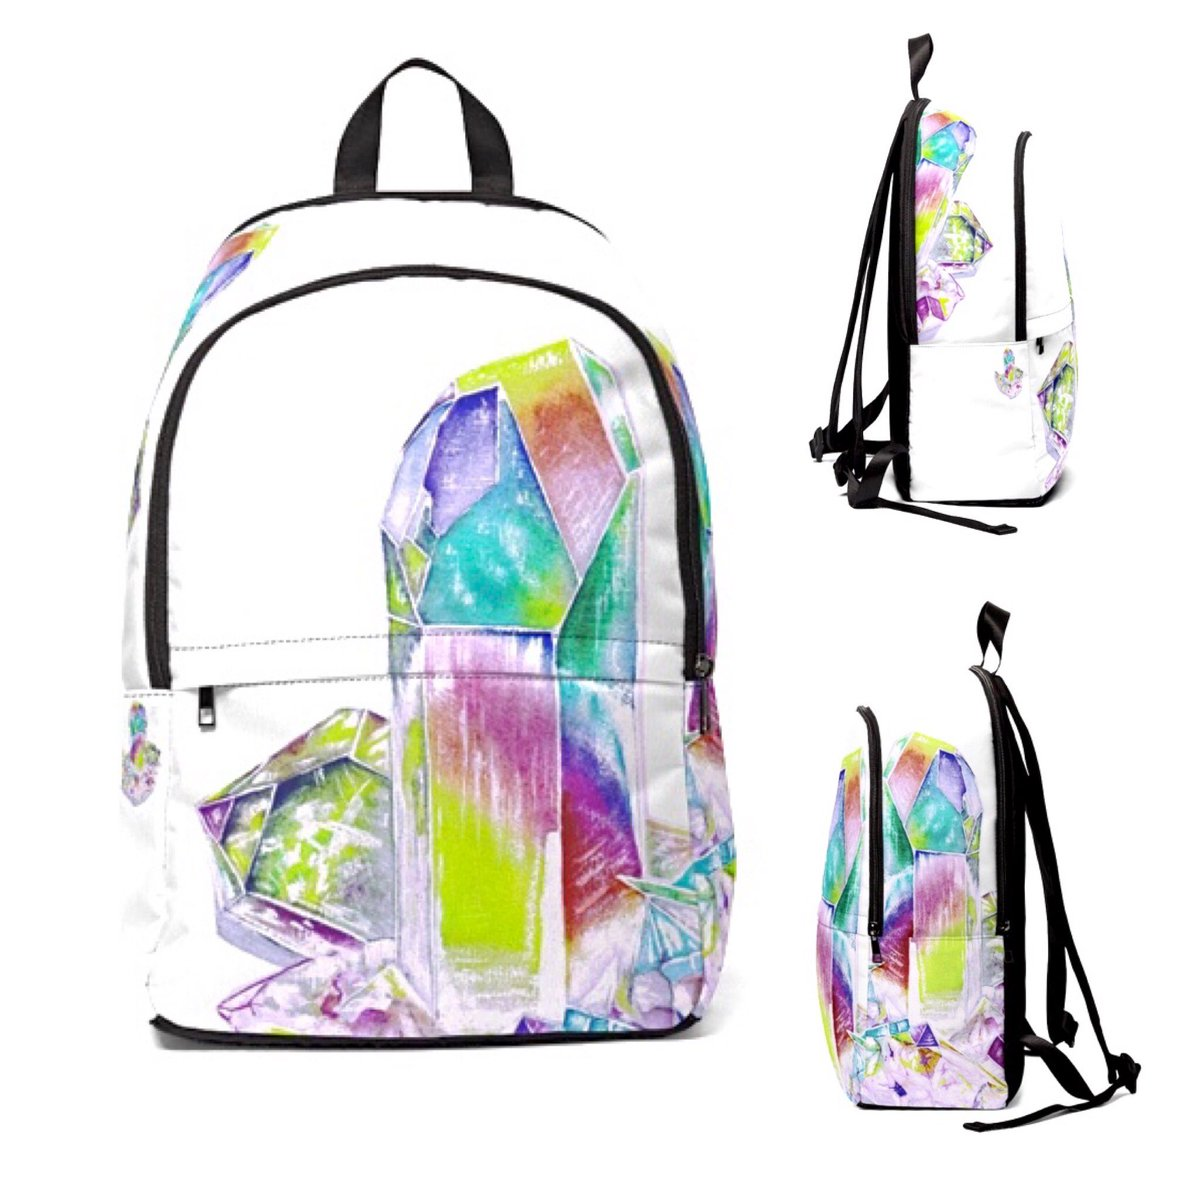 Mochila  multicolor unisex backpack white multicolor quarz , sports accessory, bag,studios, bag, wallet, made to order, watercolor …http://illustration.miyoarte.patternbyetsy.com/listing/817316…pic.twitter.com/uPFBvi1GzV